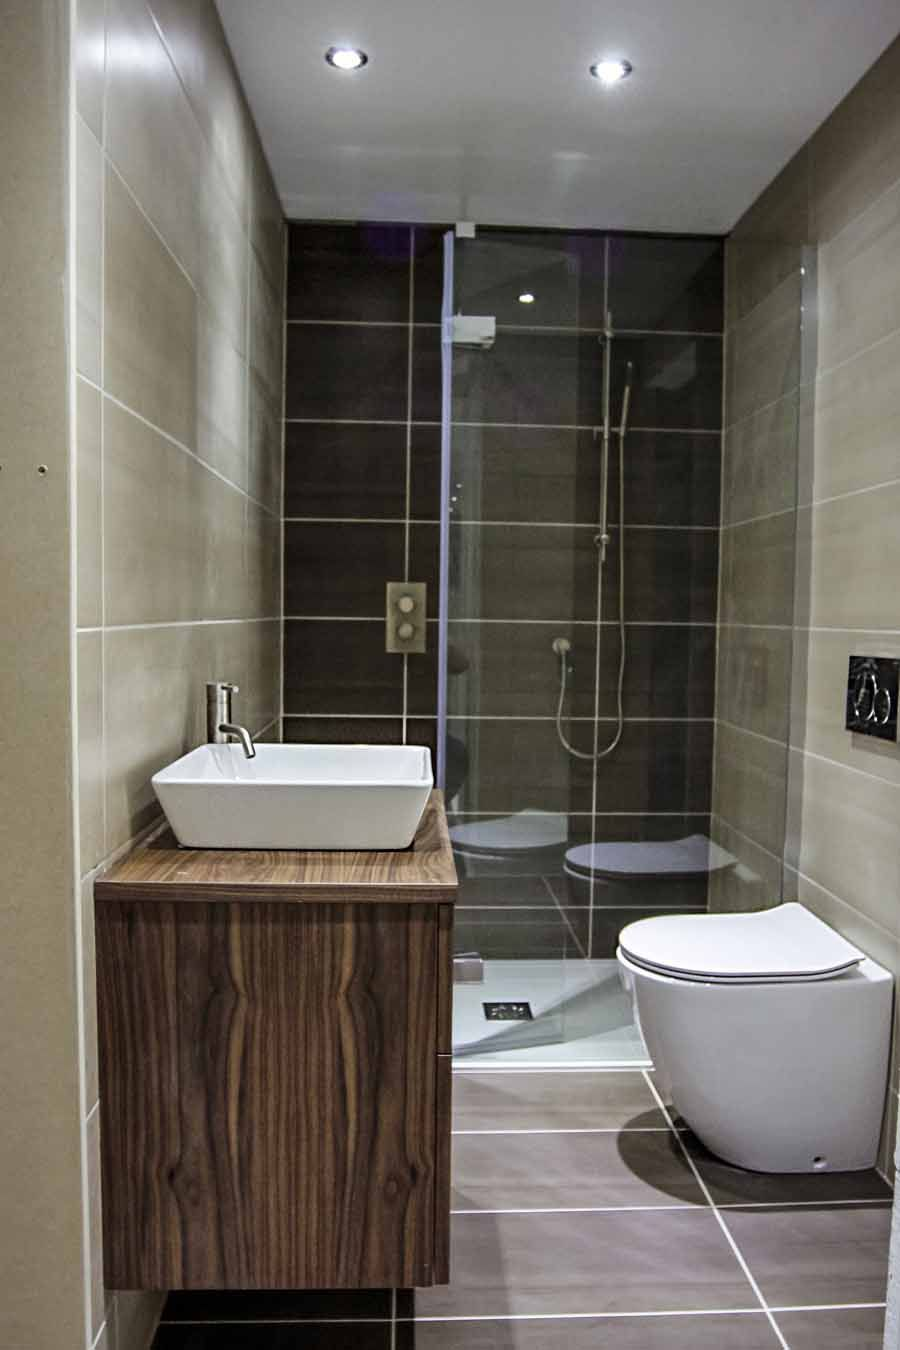 Choose The Right Bathroom Tiles With The Help Of These Key Tips - Small luxury bathrooms for small bathroom ideas